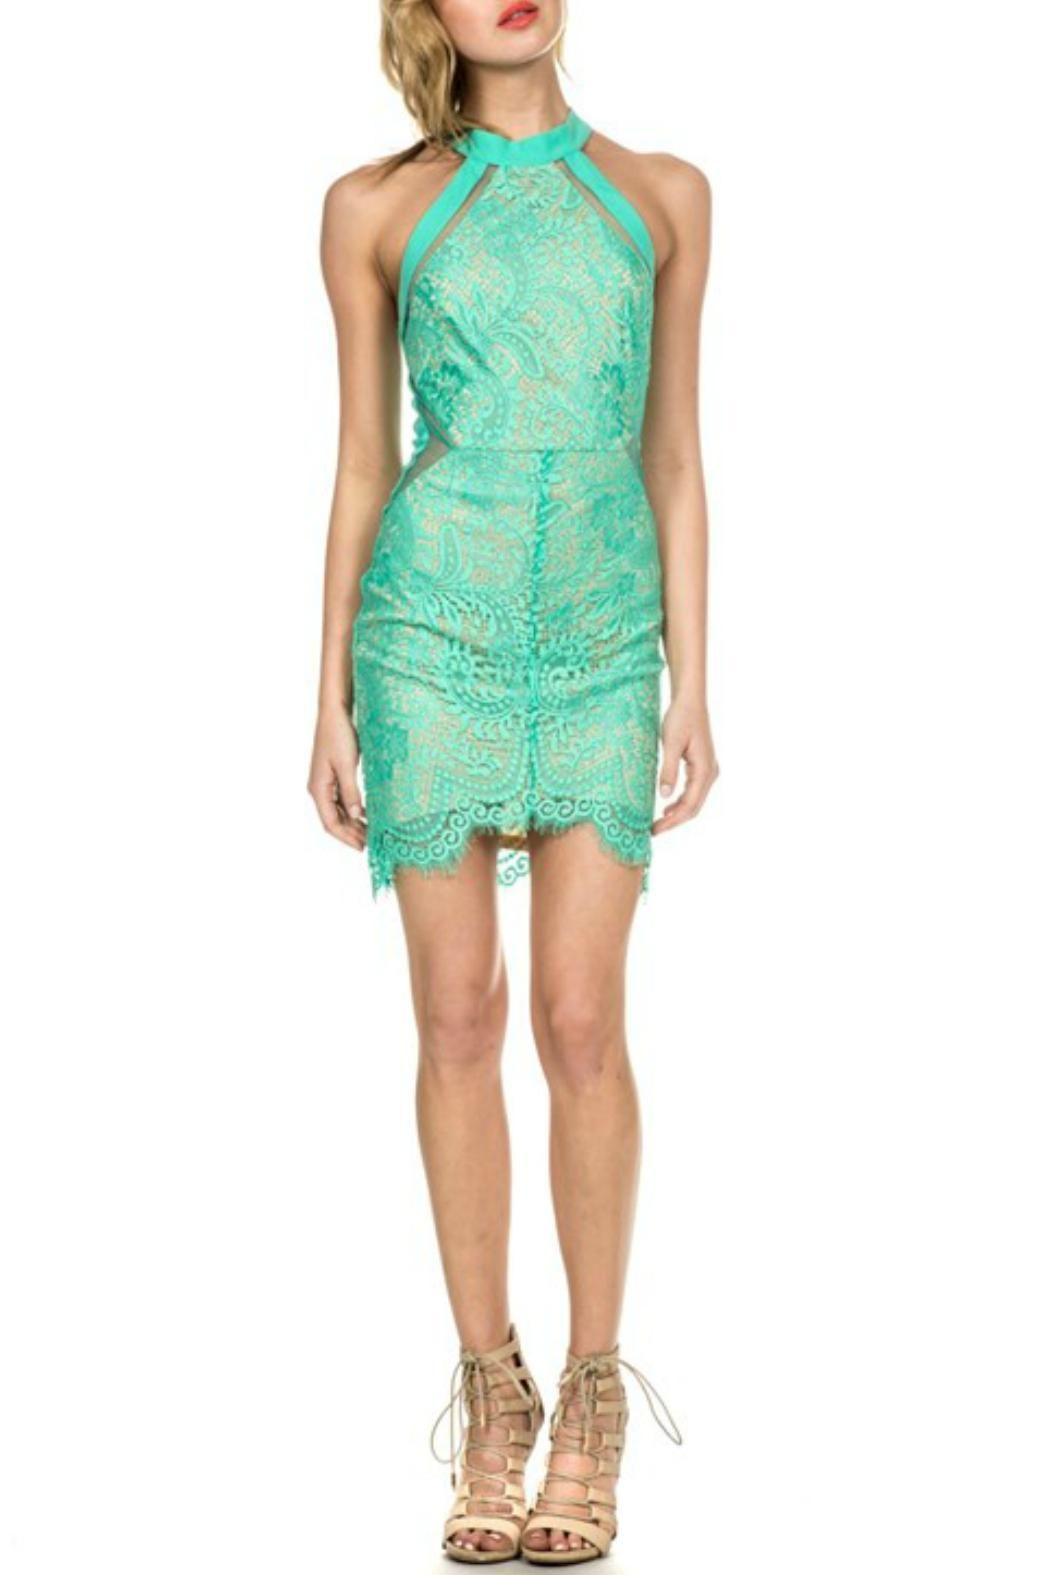 luxxel Brianna Dress | Lace party dresses, Mint color and Bright